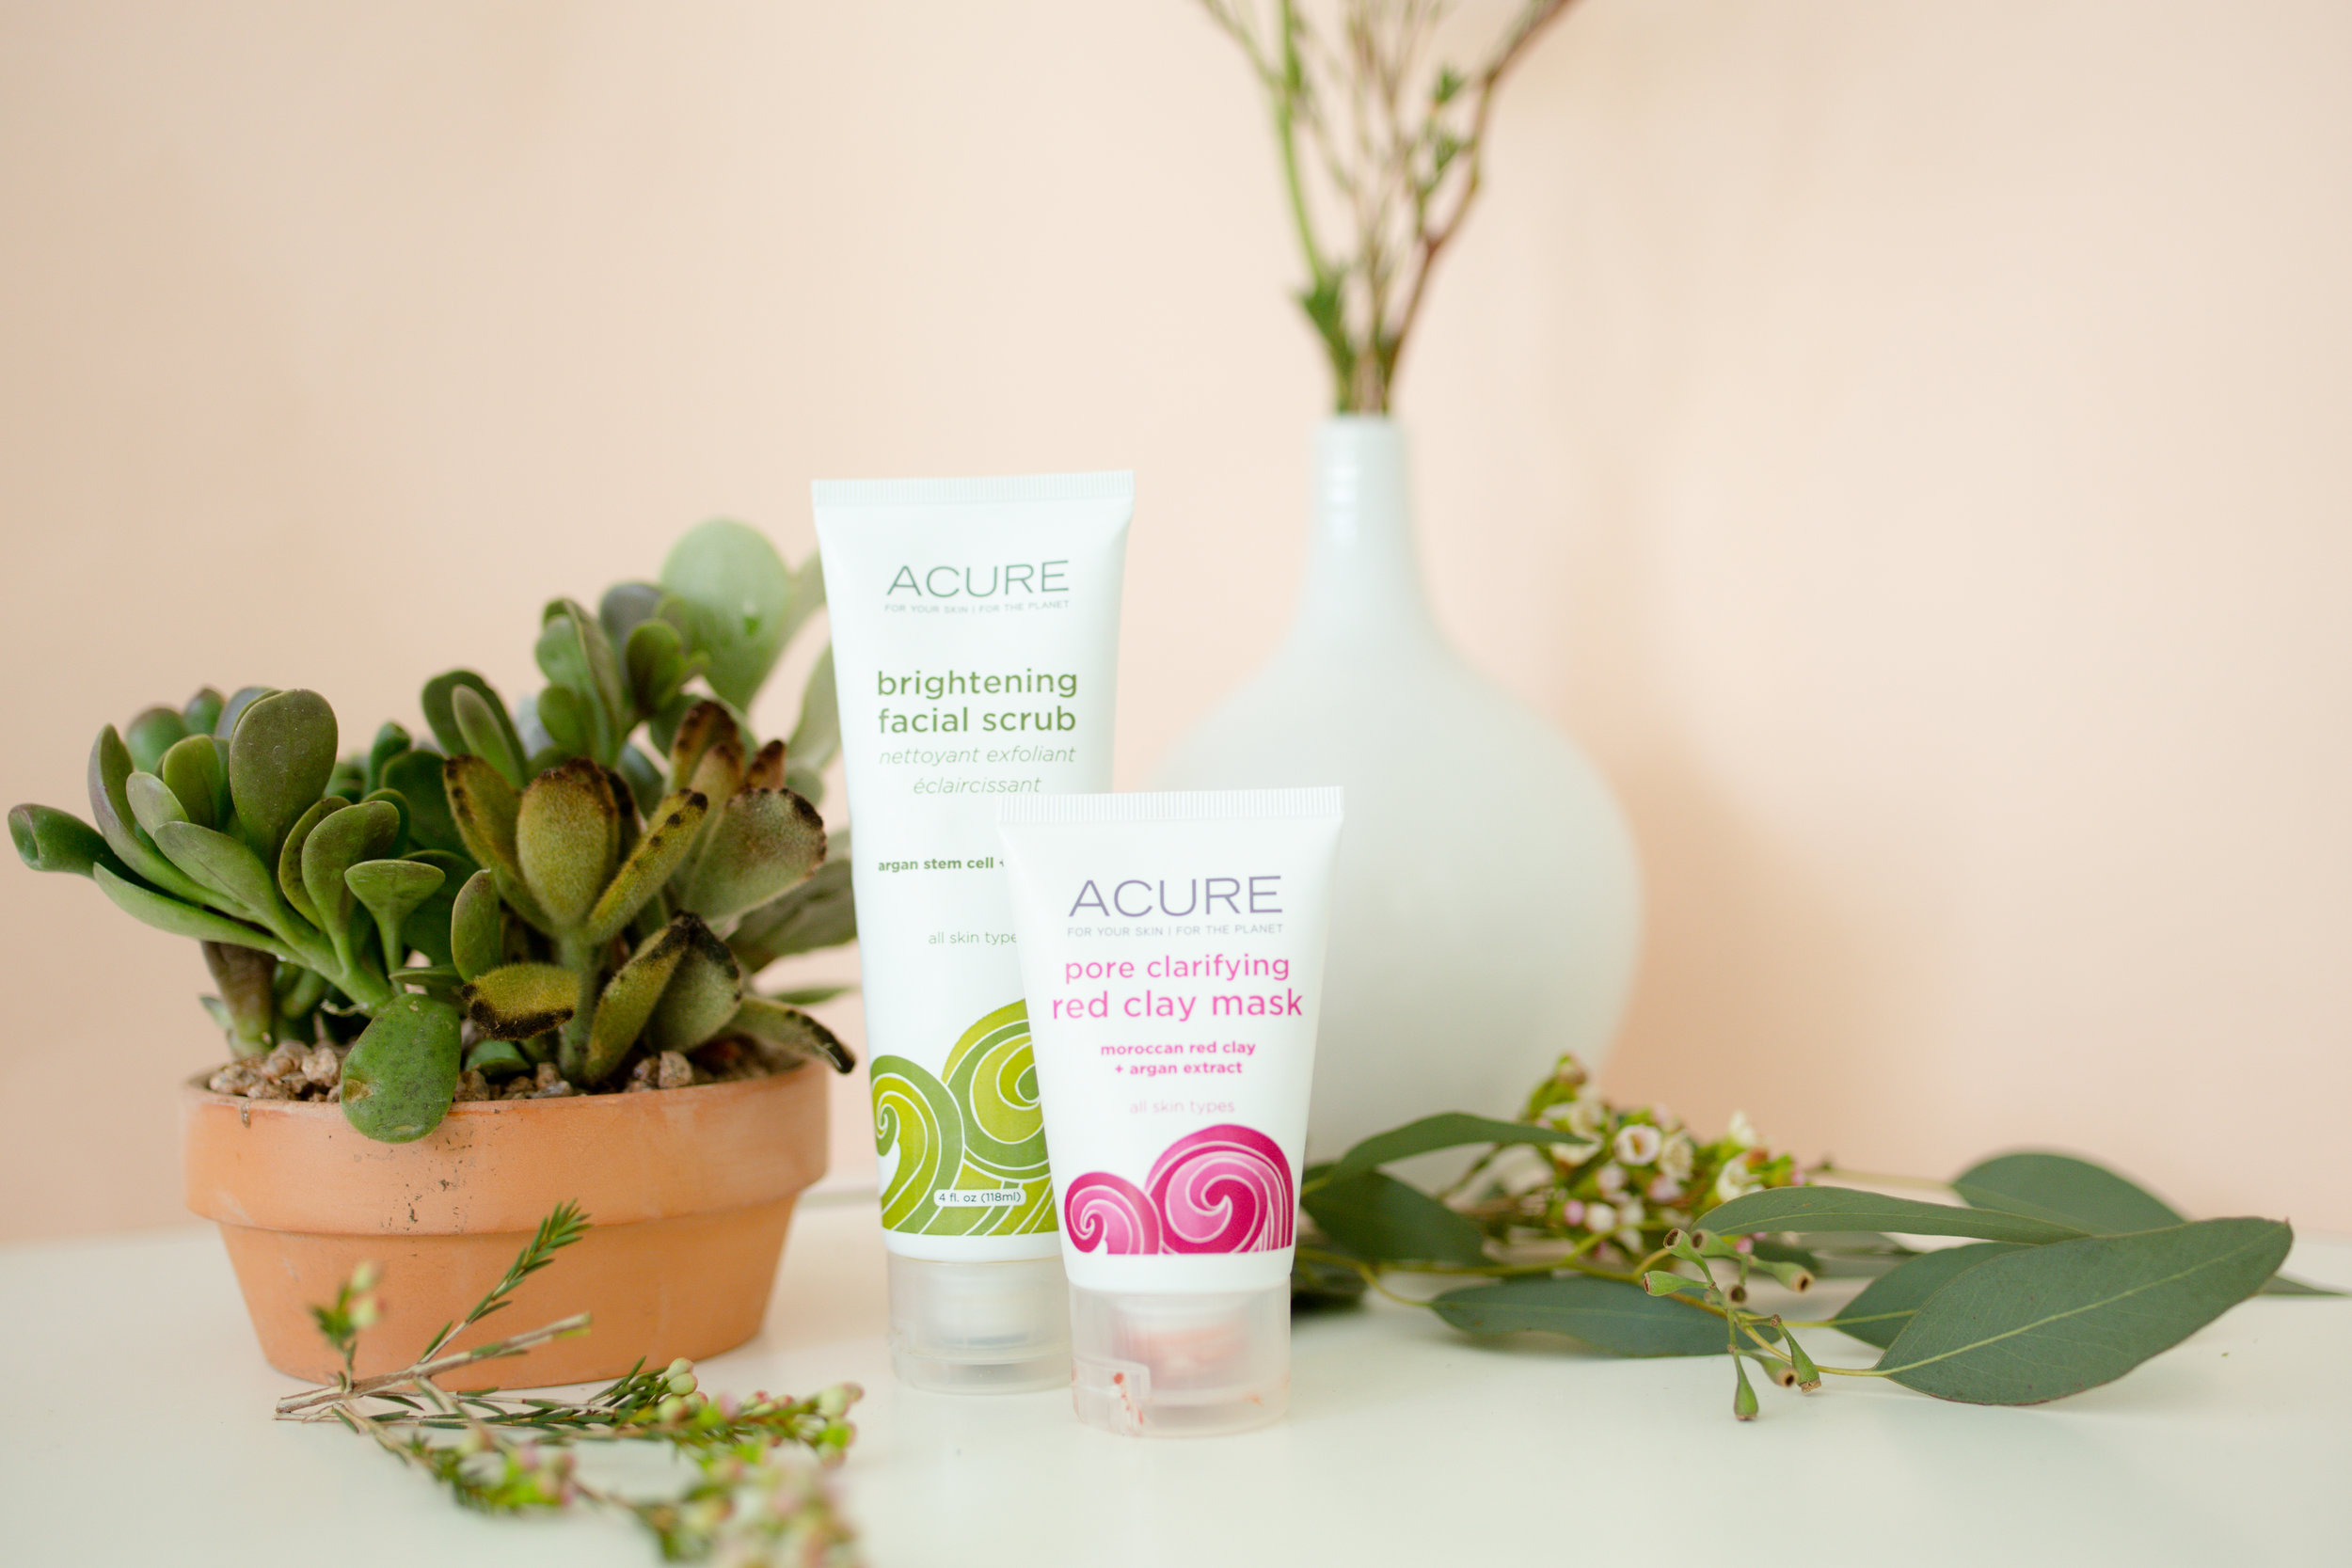 Favorite Green Beauty Products Acure Brightening Facial Scrub & Pore Clarifying Red Clay Mask